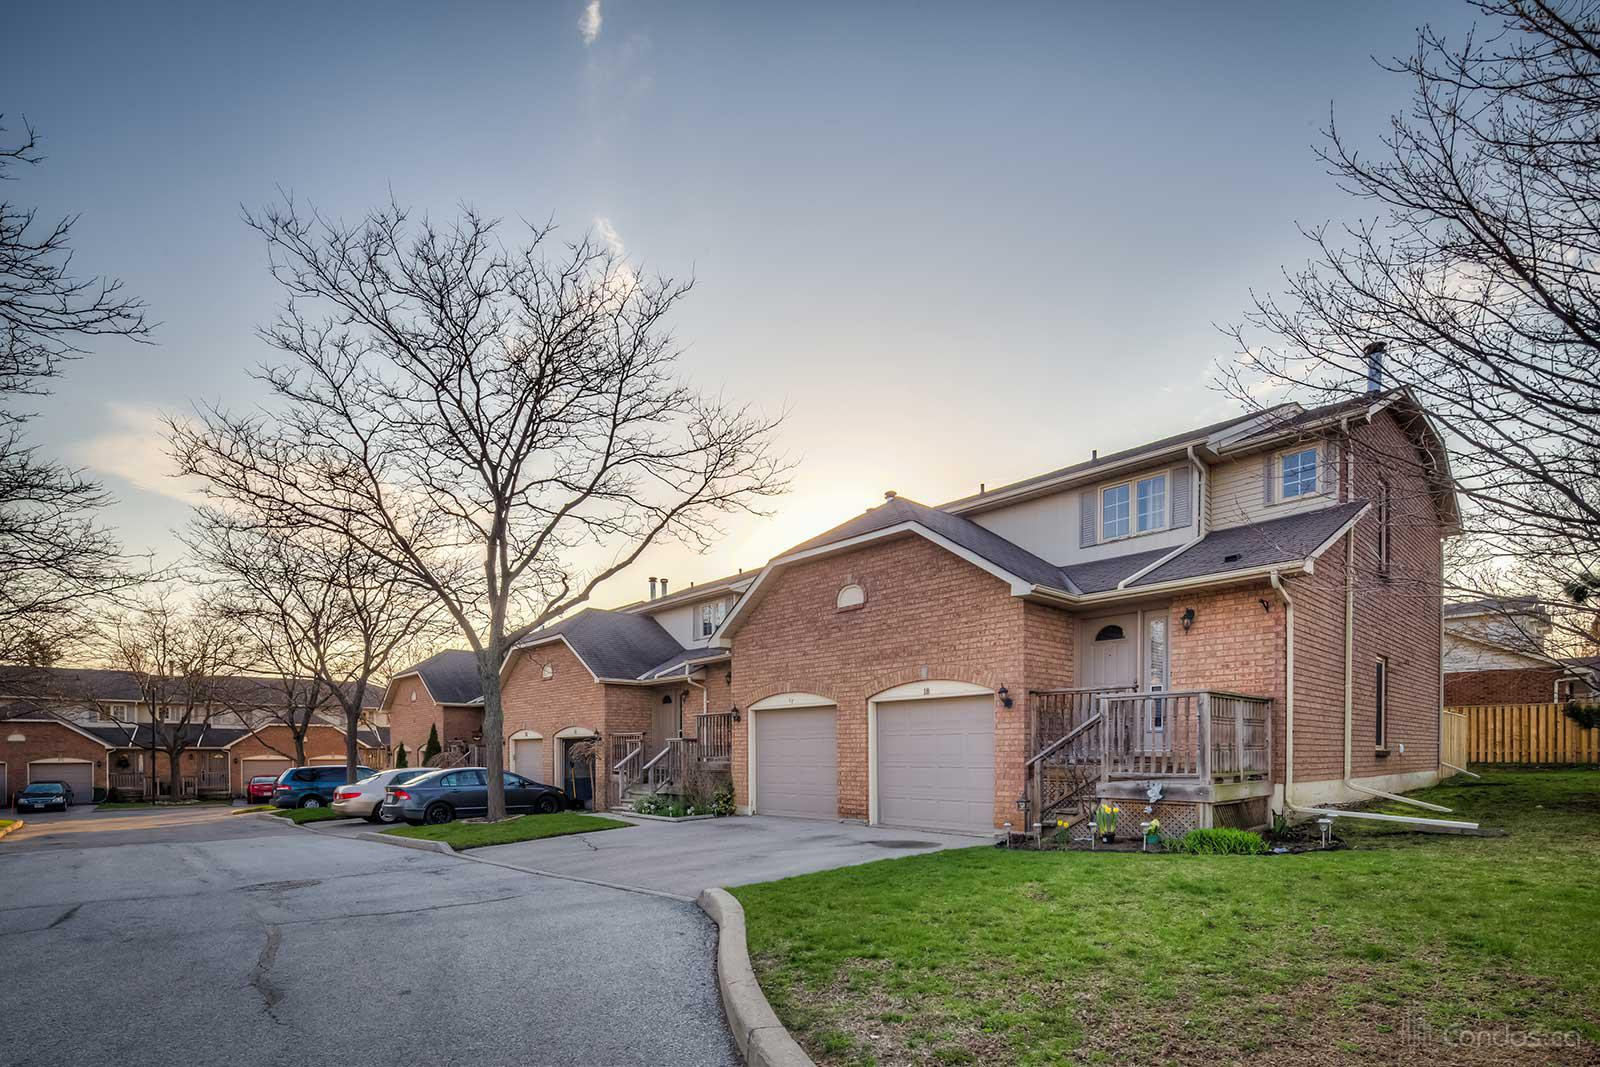 79 Braeheid Condos at 79 Braeheid Ave, Waterdown 0